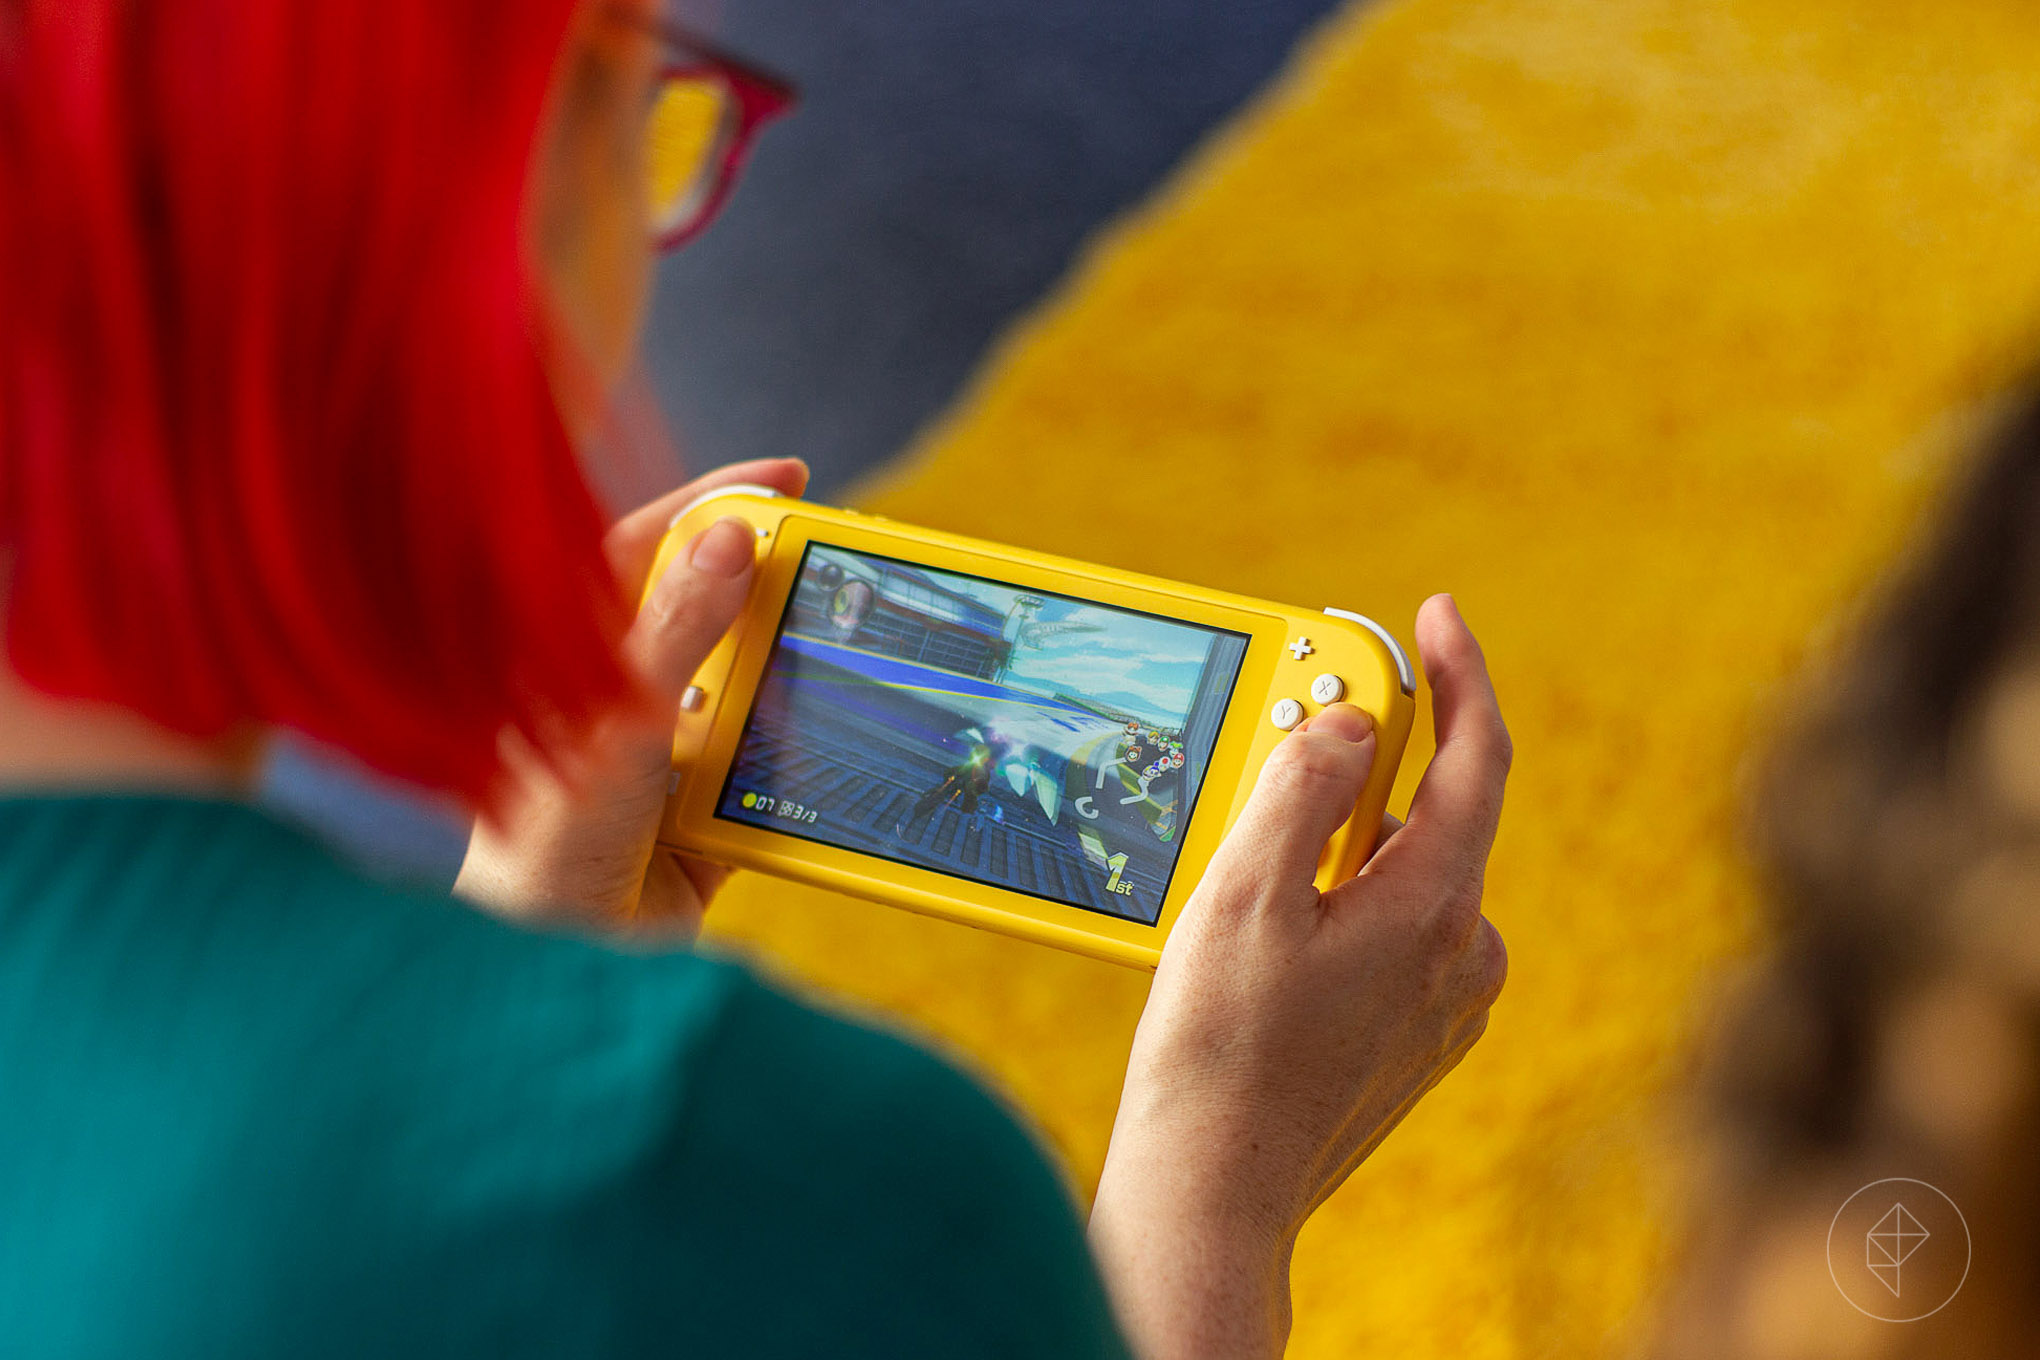 The Nintendo Switch Lite feels right for the price